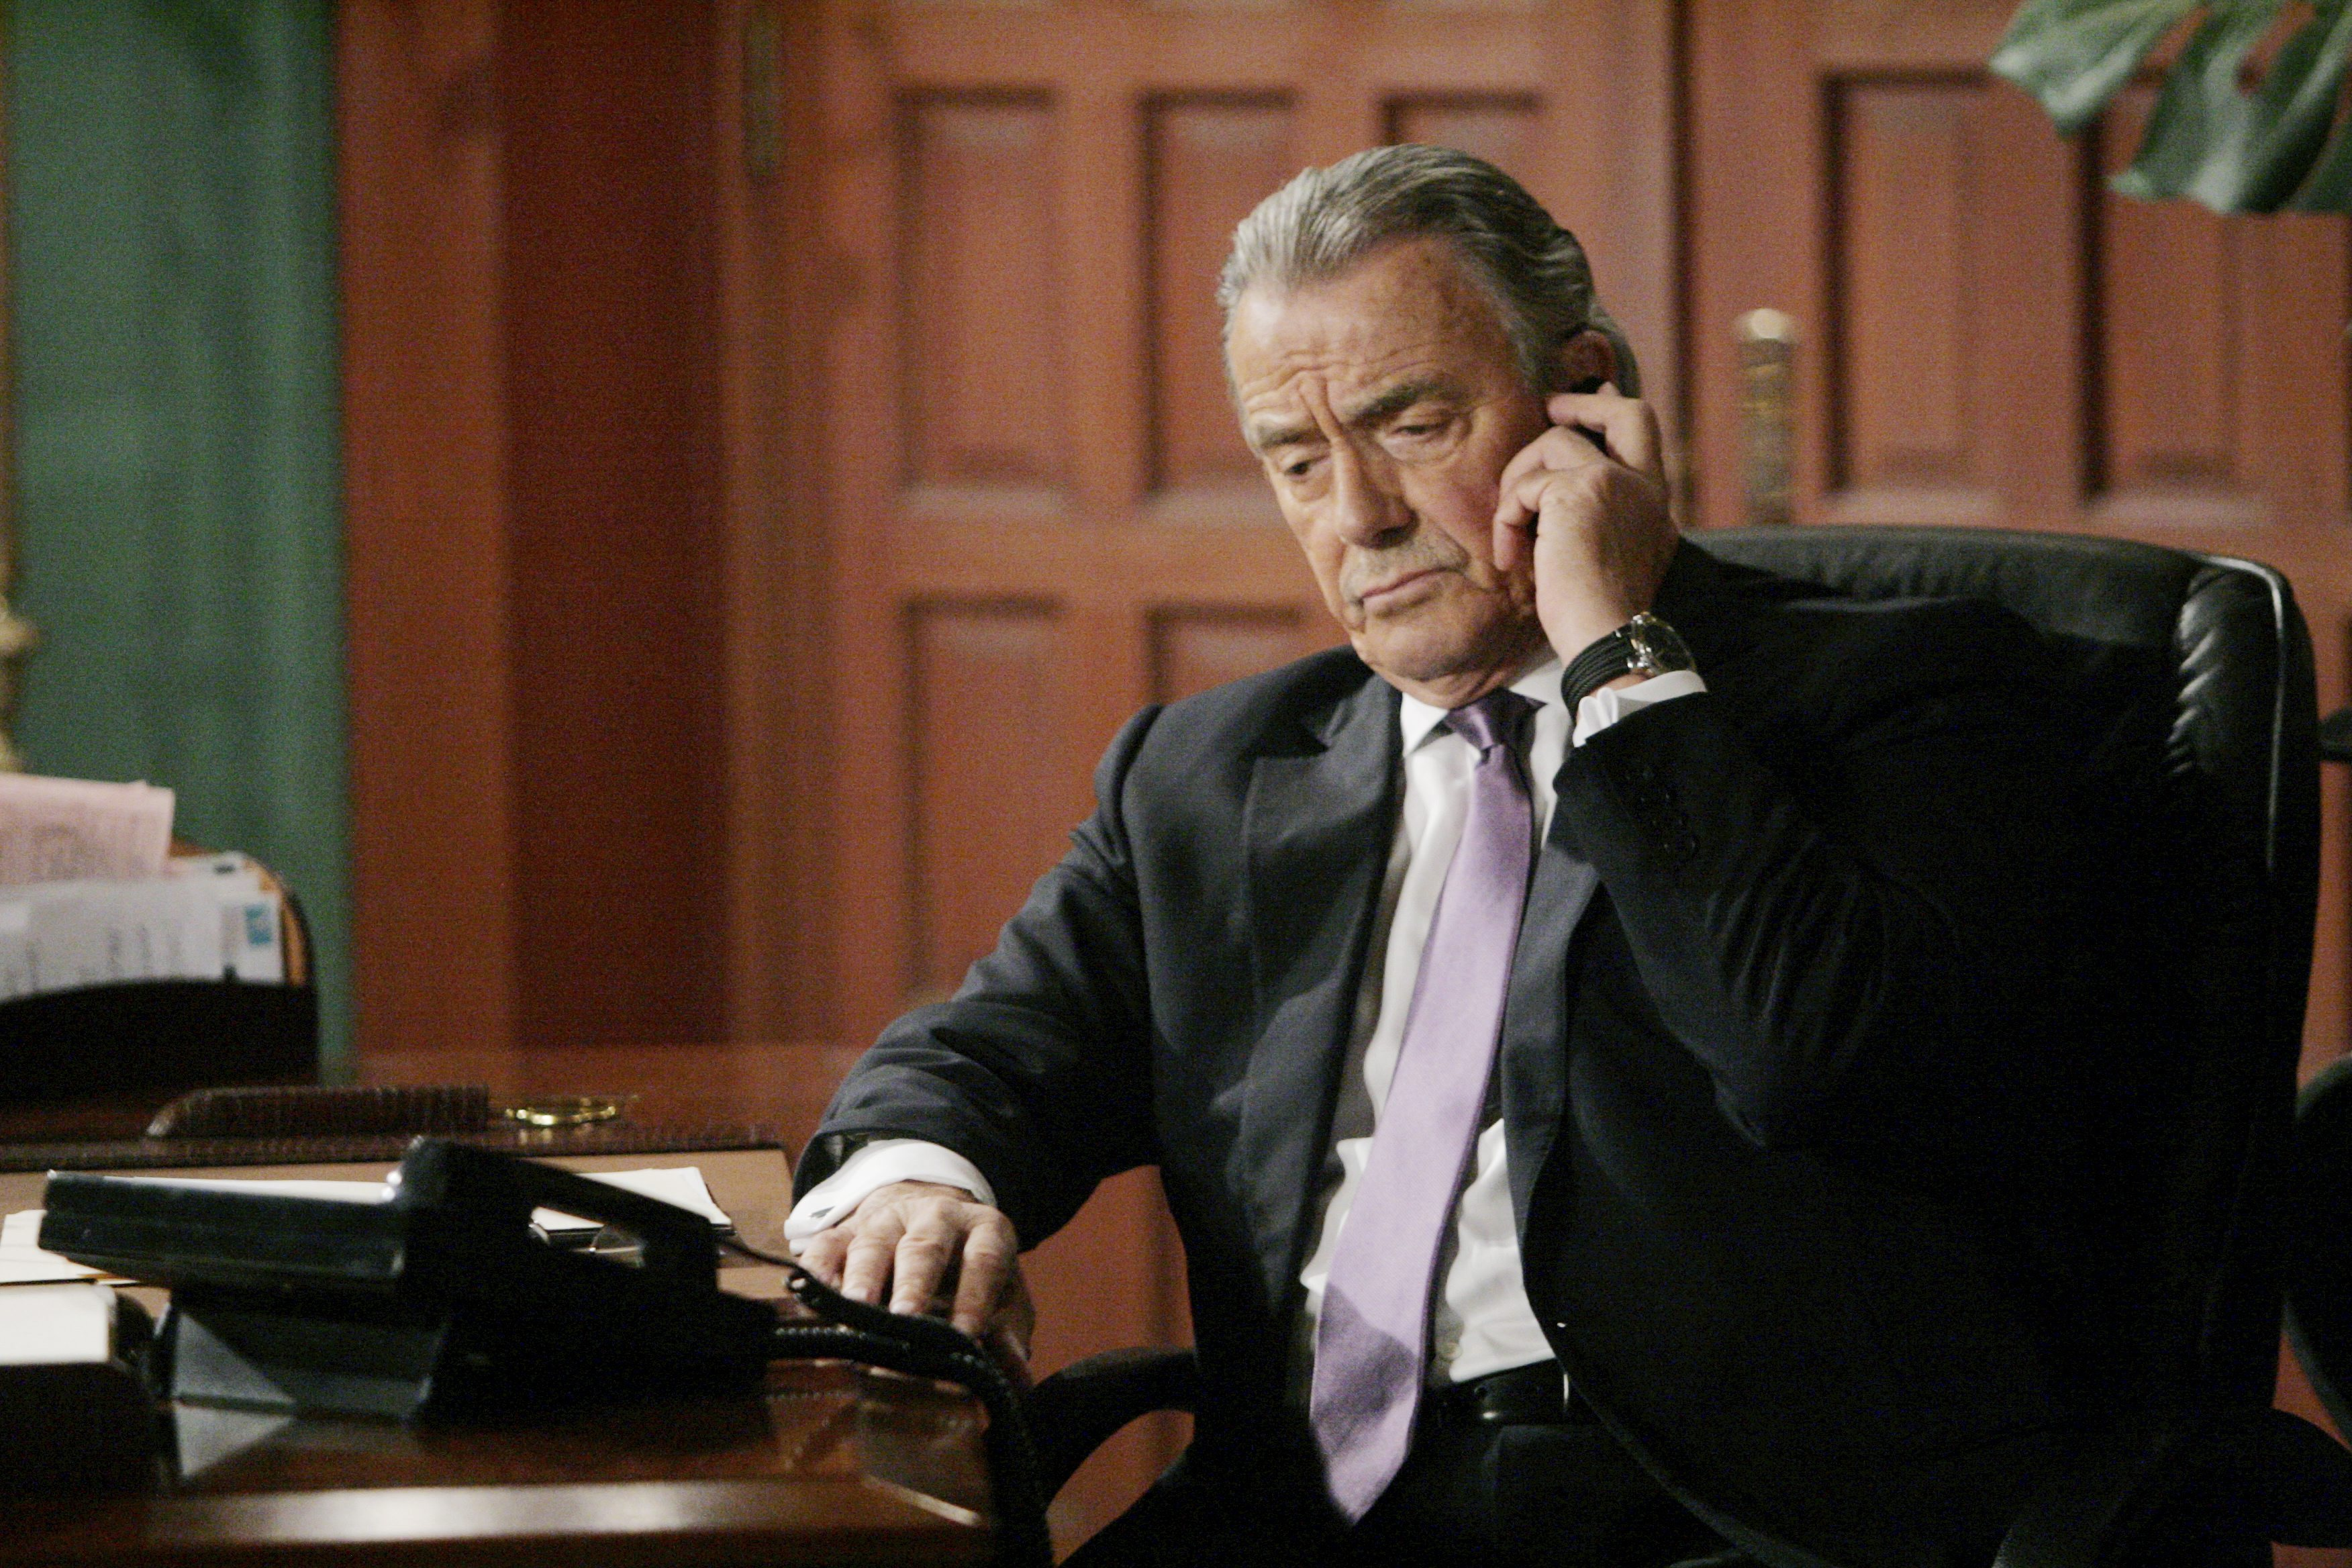 """Eric Braeden """"The Young and the Restless"""" Set  CBS television City Los Angeles 08/01/14 © Sean Smith/jpistudios.com 310-657-9661 Episode # 10493 U.S. Airdate 09/09/14"""